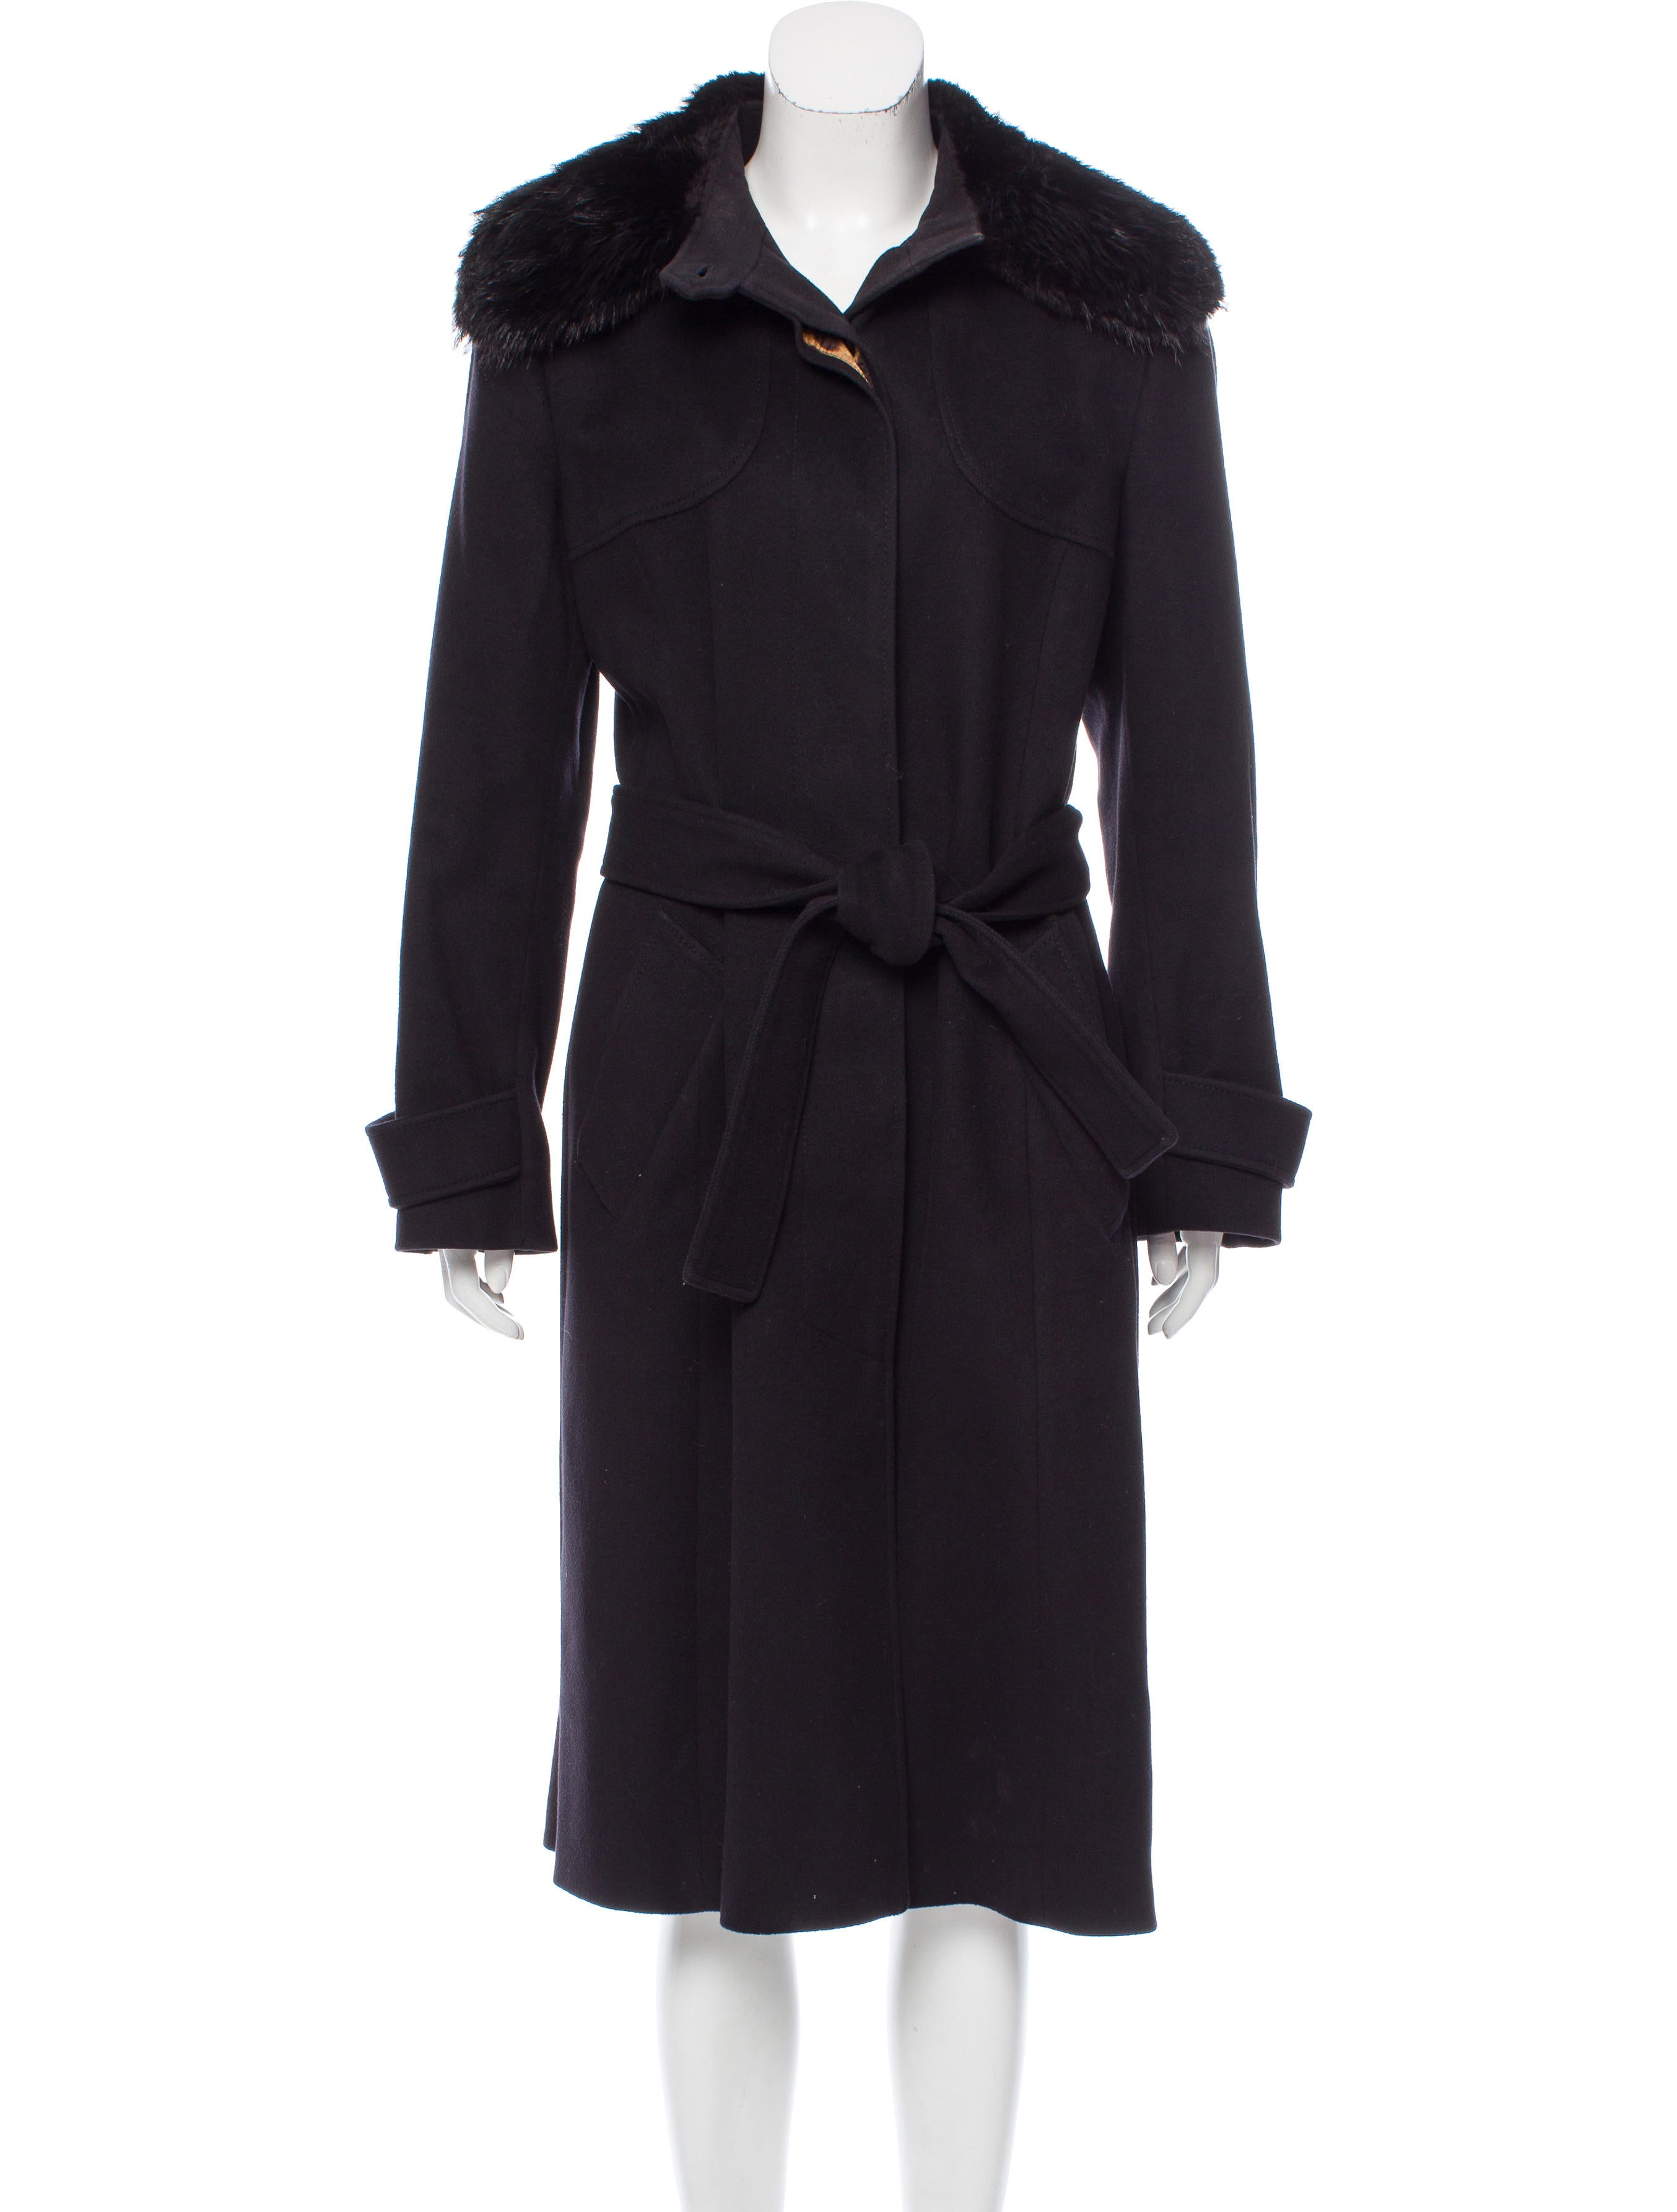 FREE Shipping & FREE Returns on Wool & Cashmere Coats. Shop now! Pick Up in Store Available.